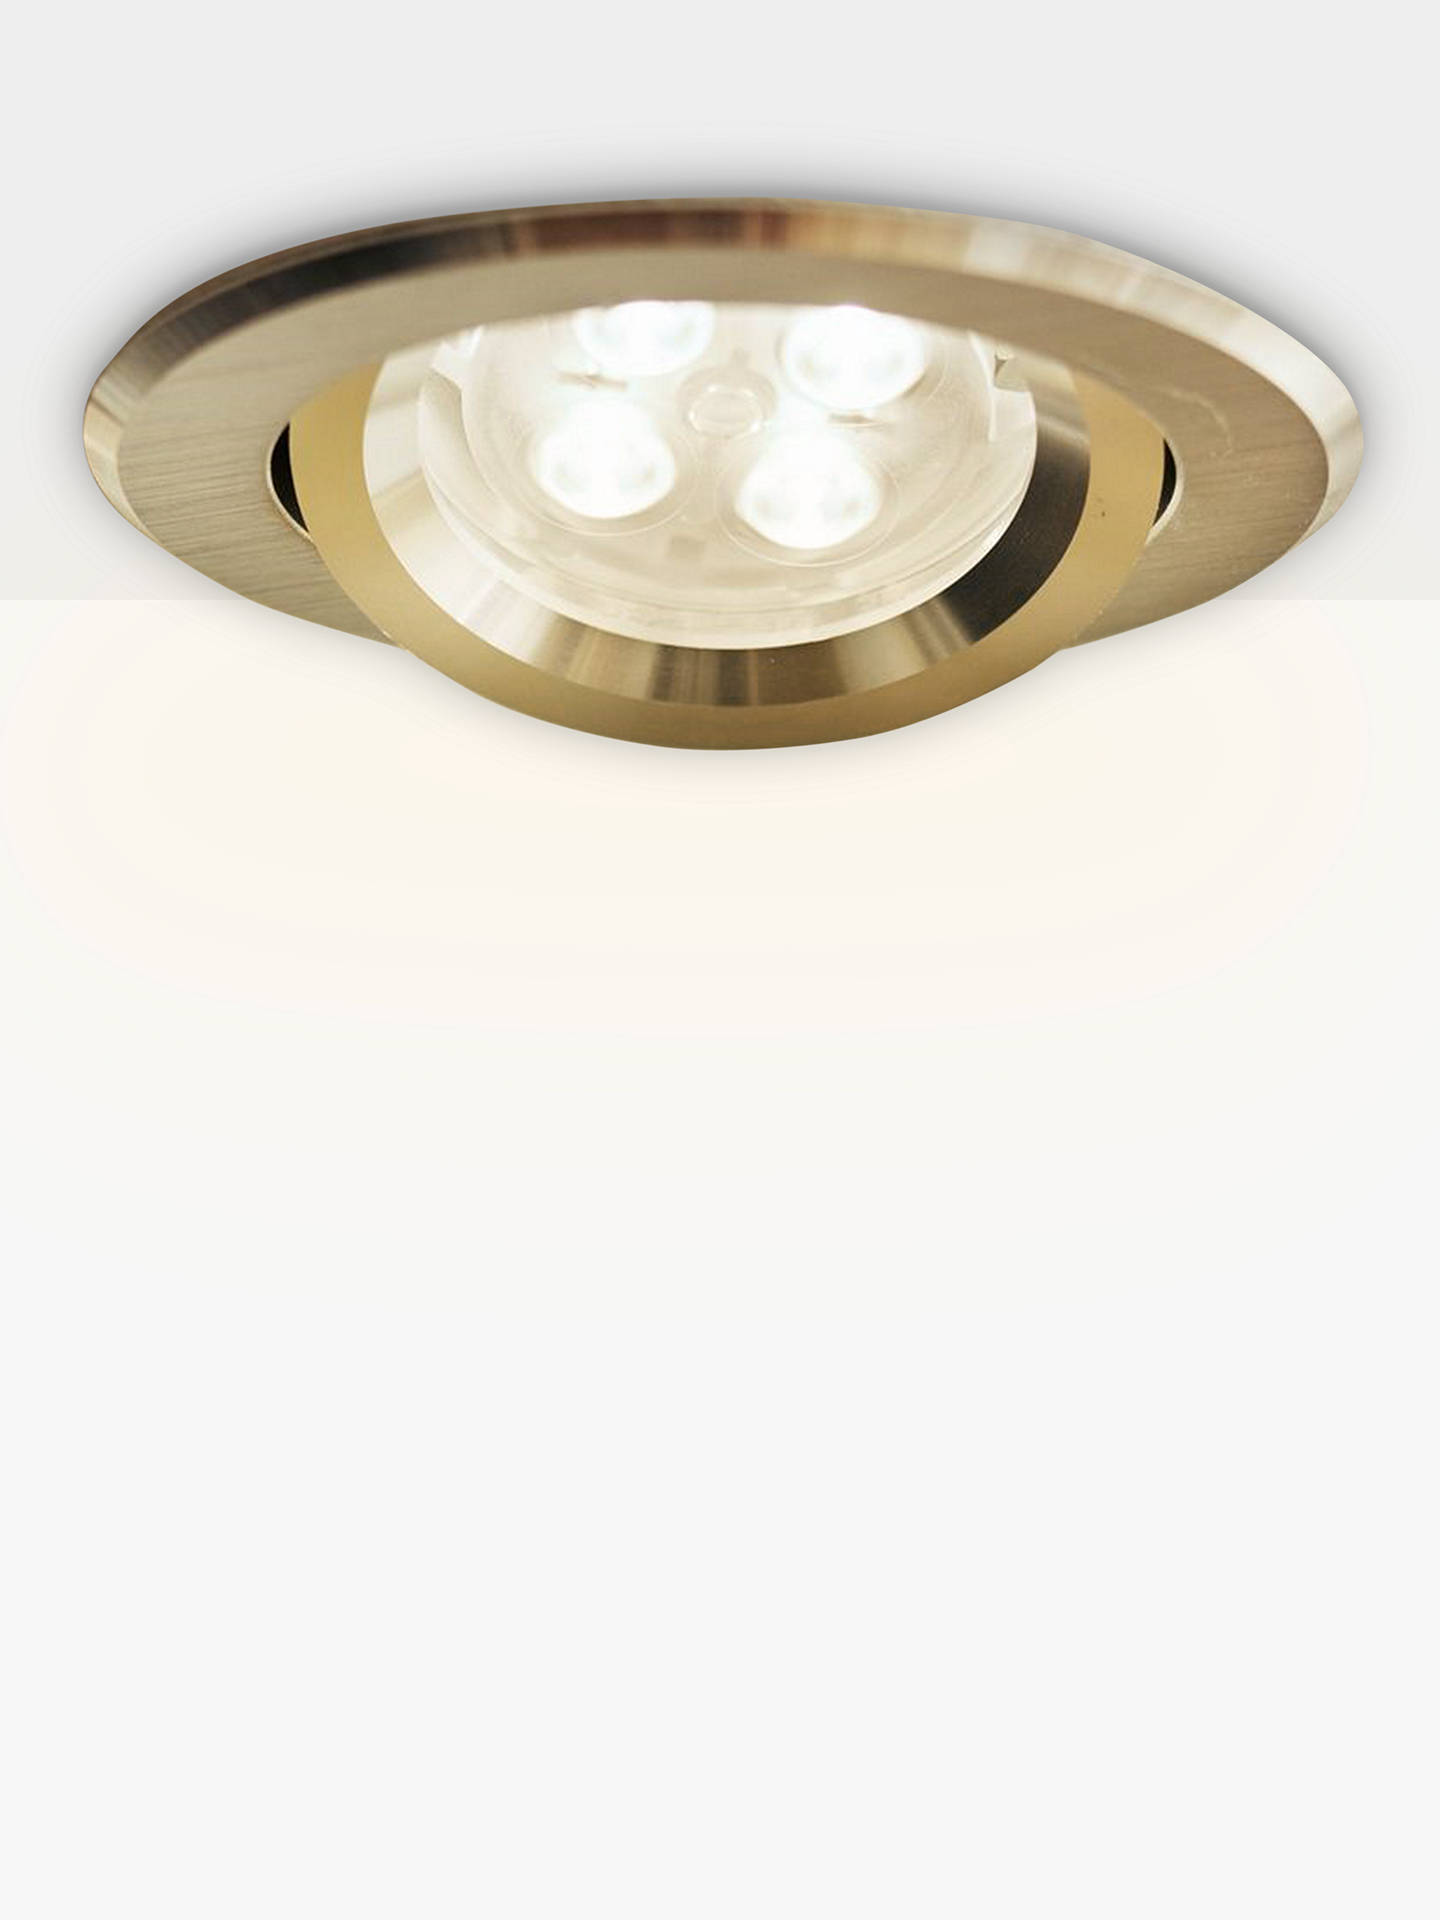 BuyPhilips 3.5W GU10 LED Spotlight Bulb Online at johnlewis.com